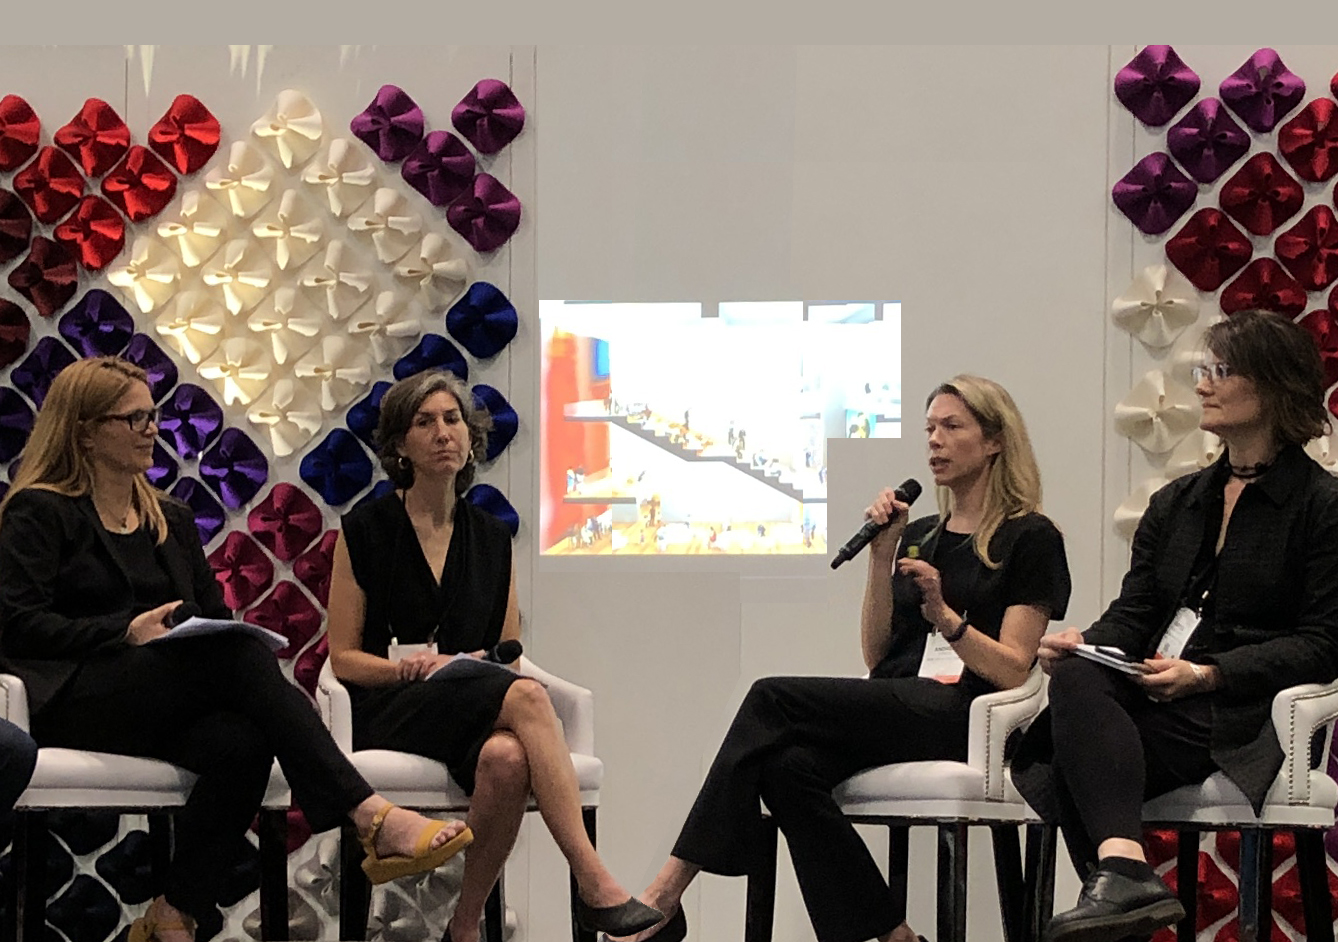 ICFF Talks showcases the winners of the 2019 AIANY Design Awards, Interiors, including O'Neill Rose Architects.